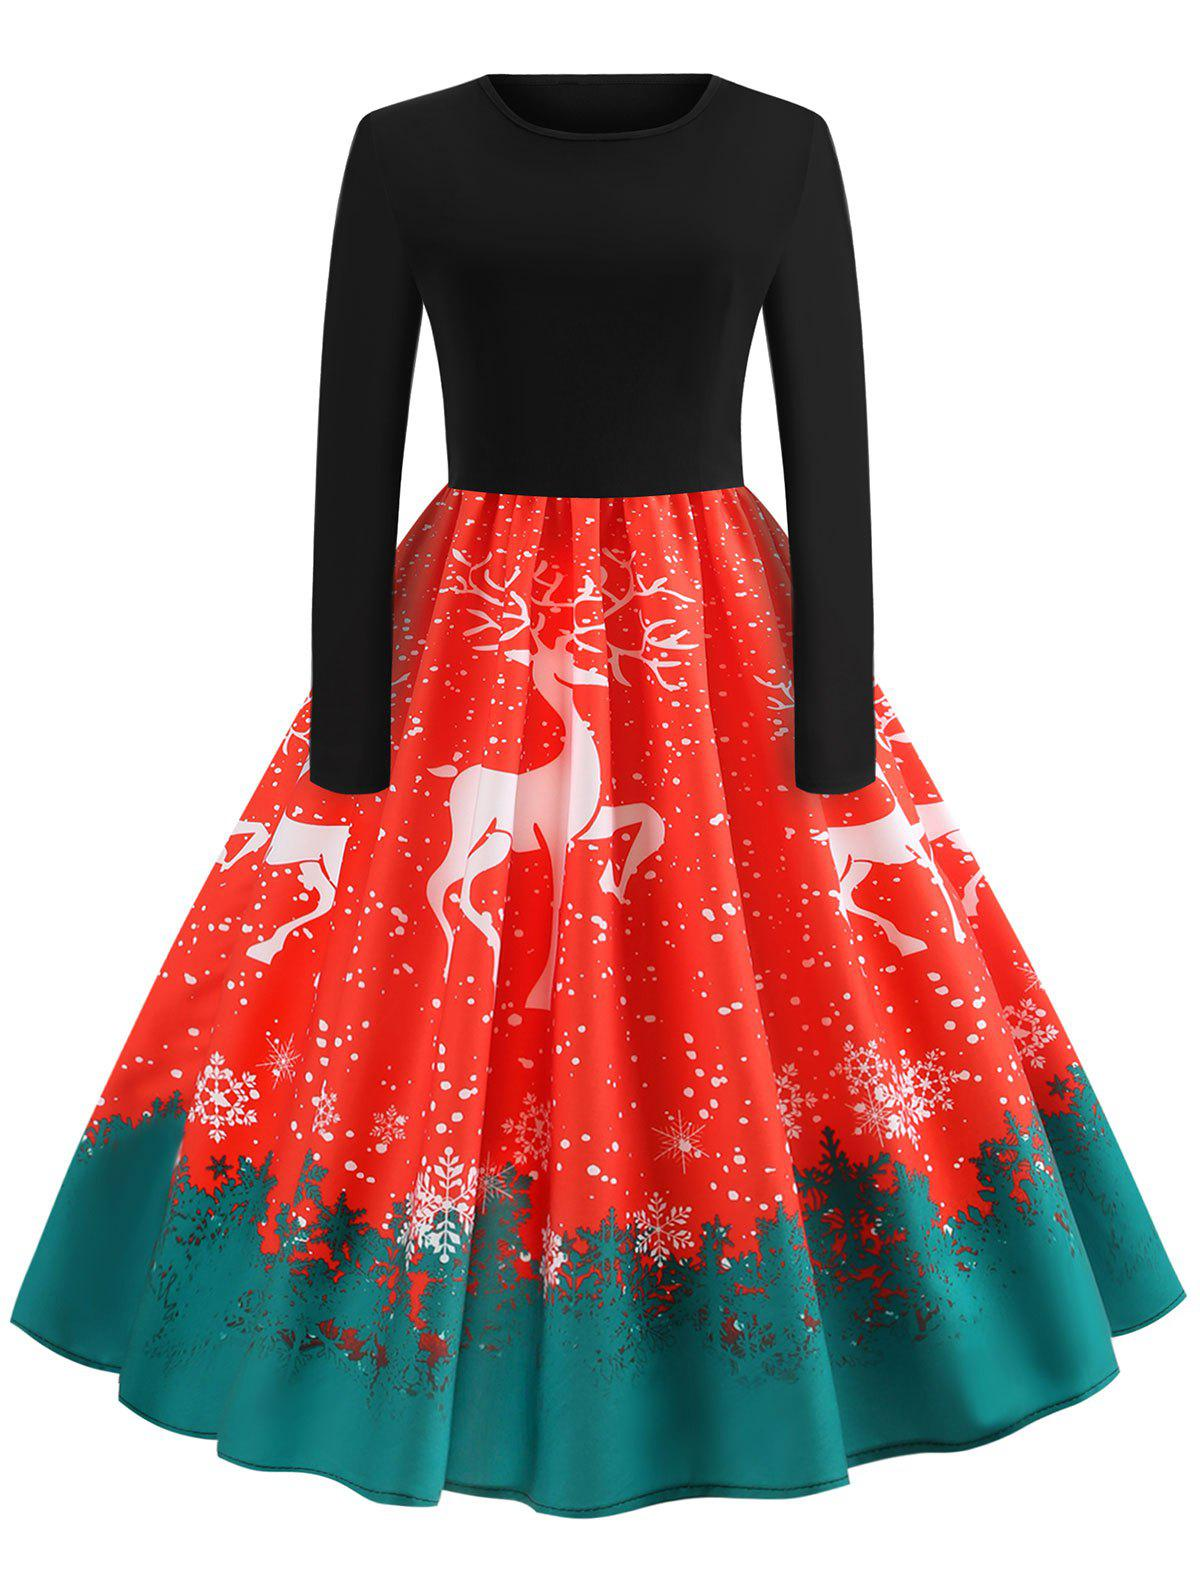 Chic Vintage Reindeer Snowflake Print Christmas Dress